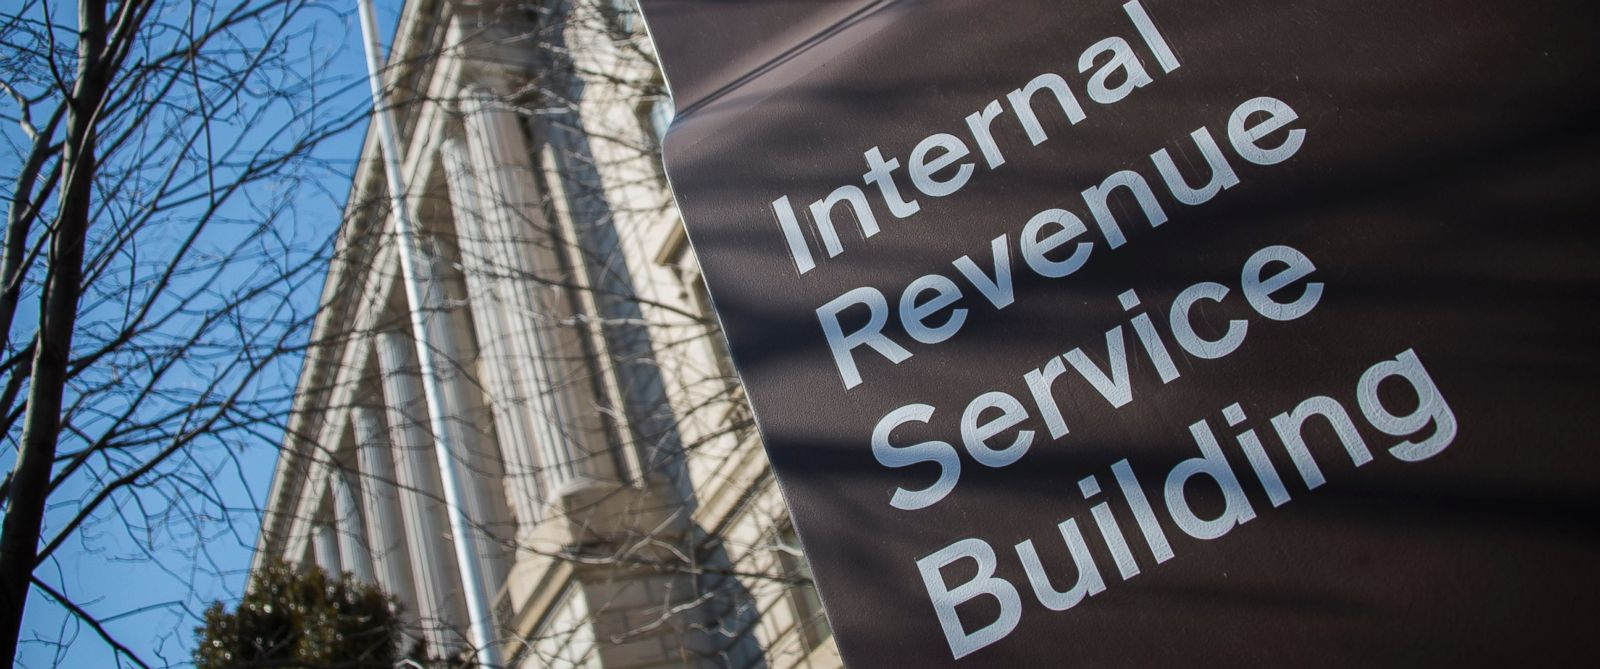 PHOTO: The Internal Revenue Service (IRS) building is viewed in Washington, DC, Feb. 19, 2014.